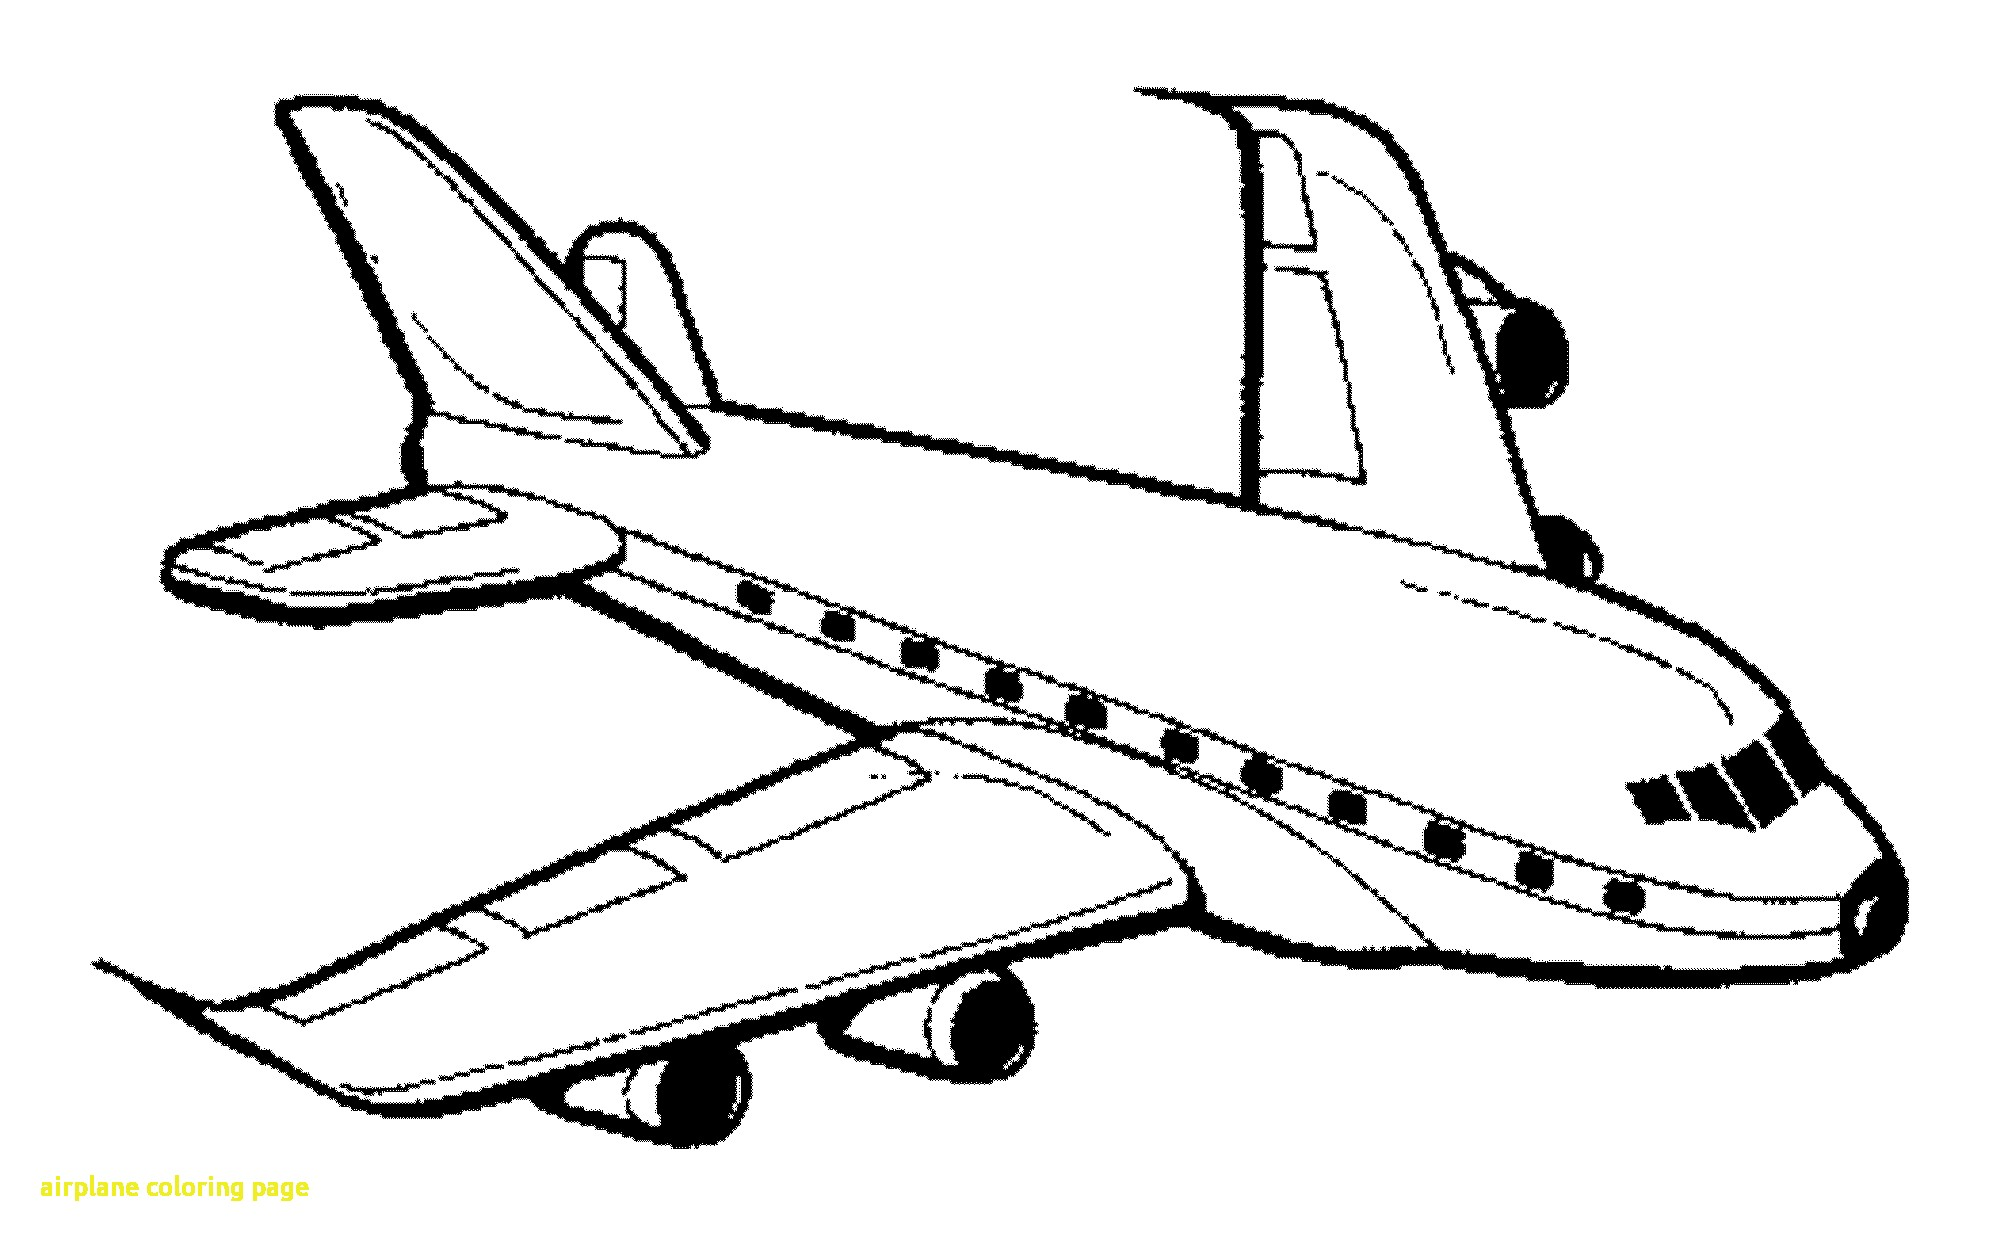 aviation coloring pages - photo#28